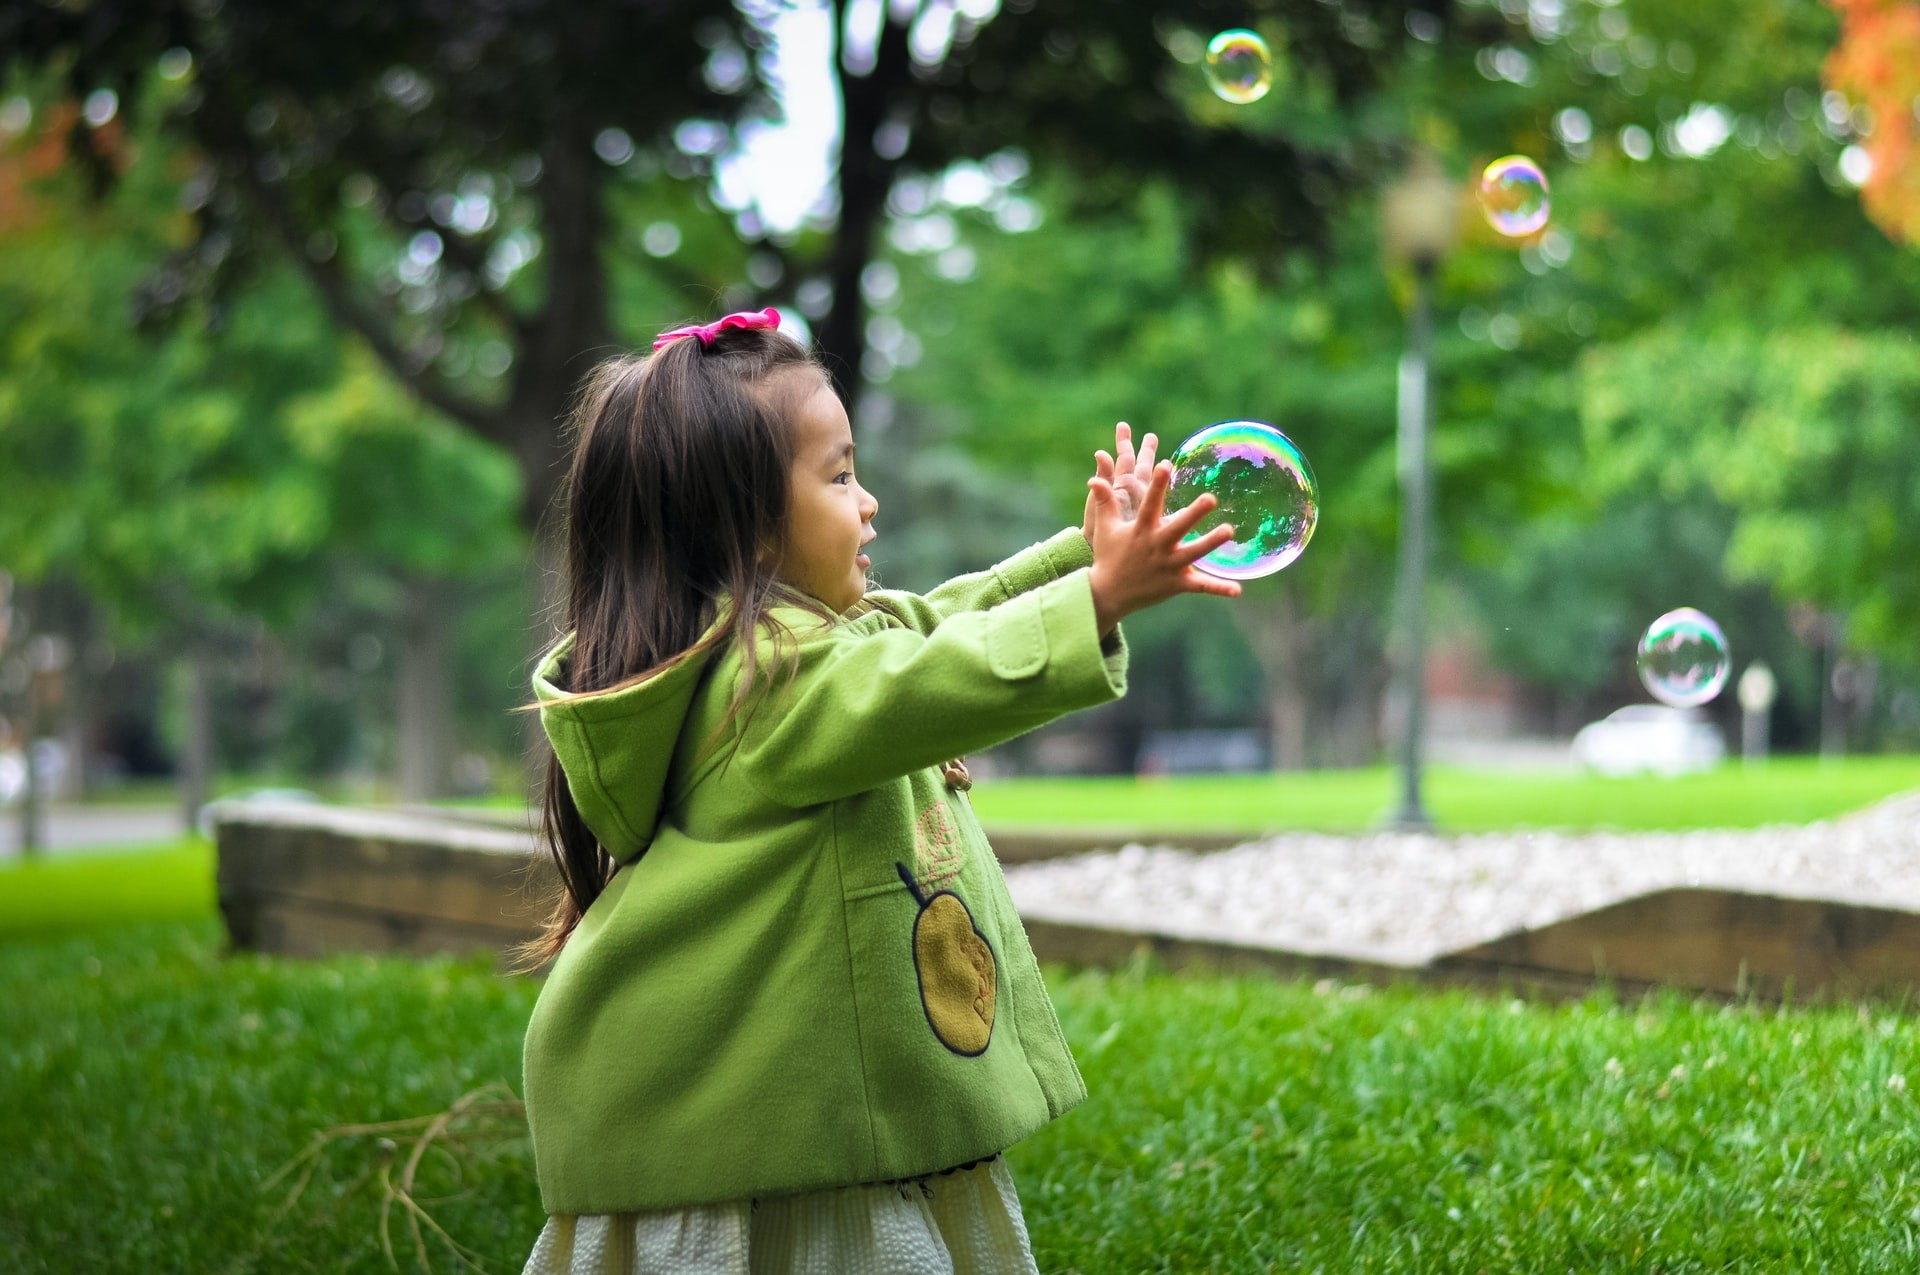 A young girl plays outside with bubbles to promote physical development through play-based learning activities.